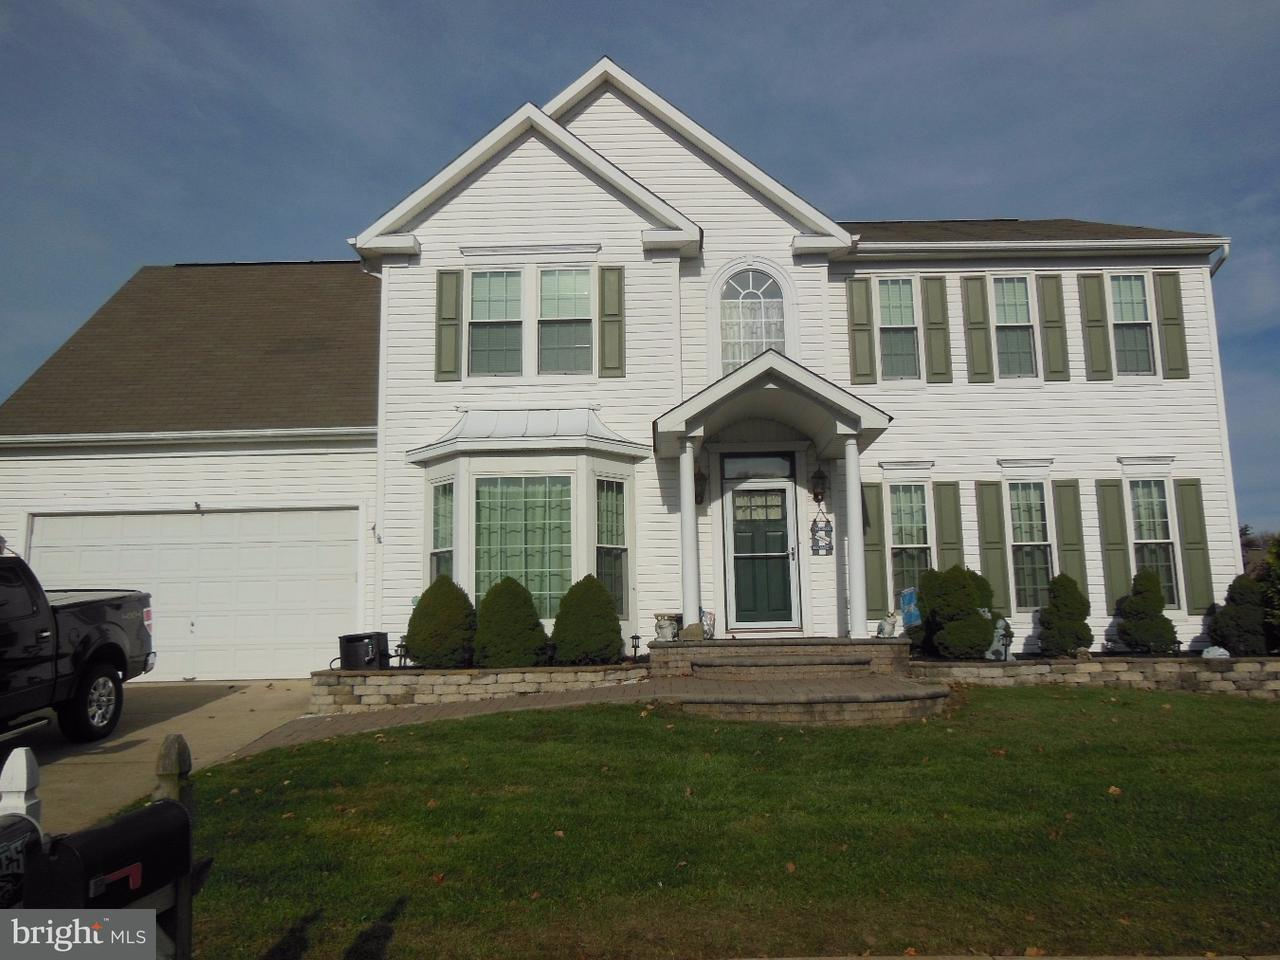 Single Family Home for Sale at 37 CANIDAE Street Burlington Township, New Jersey 08016 United States